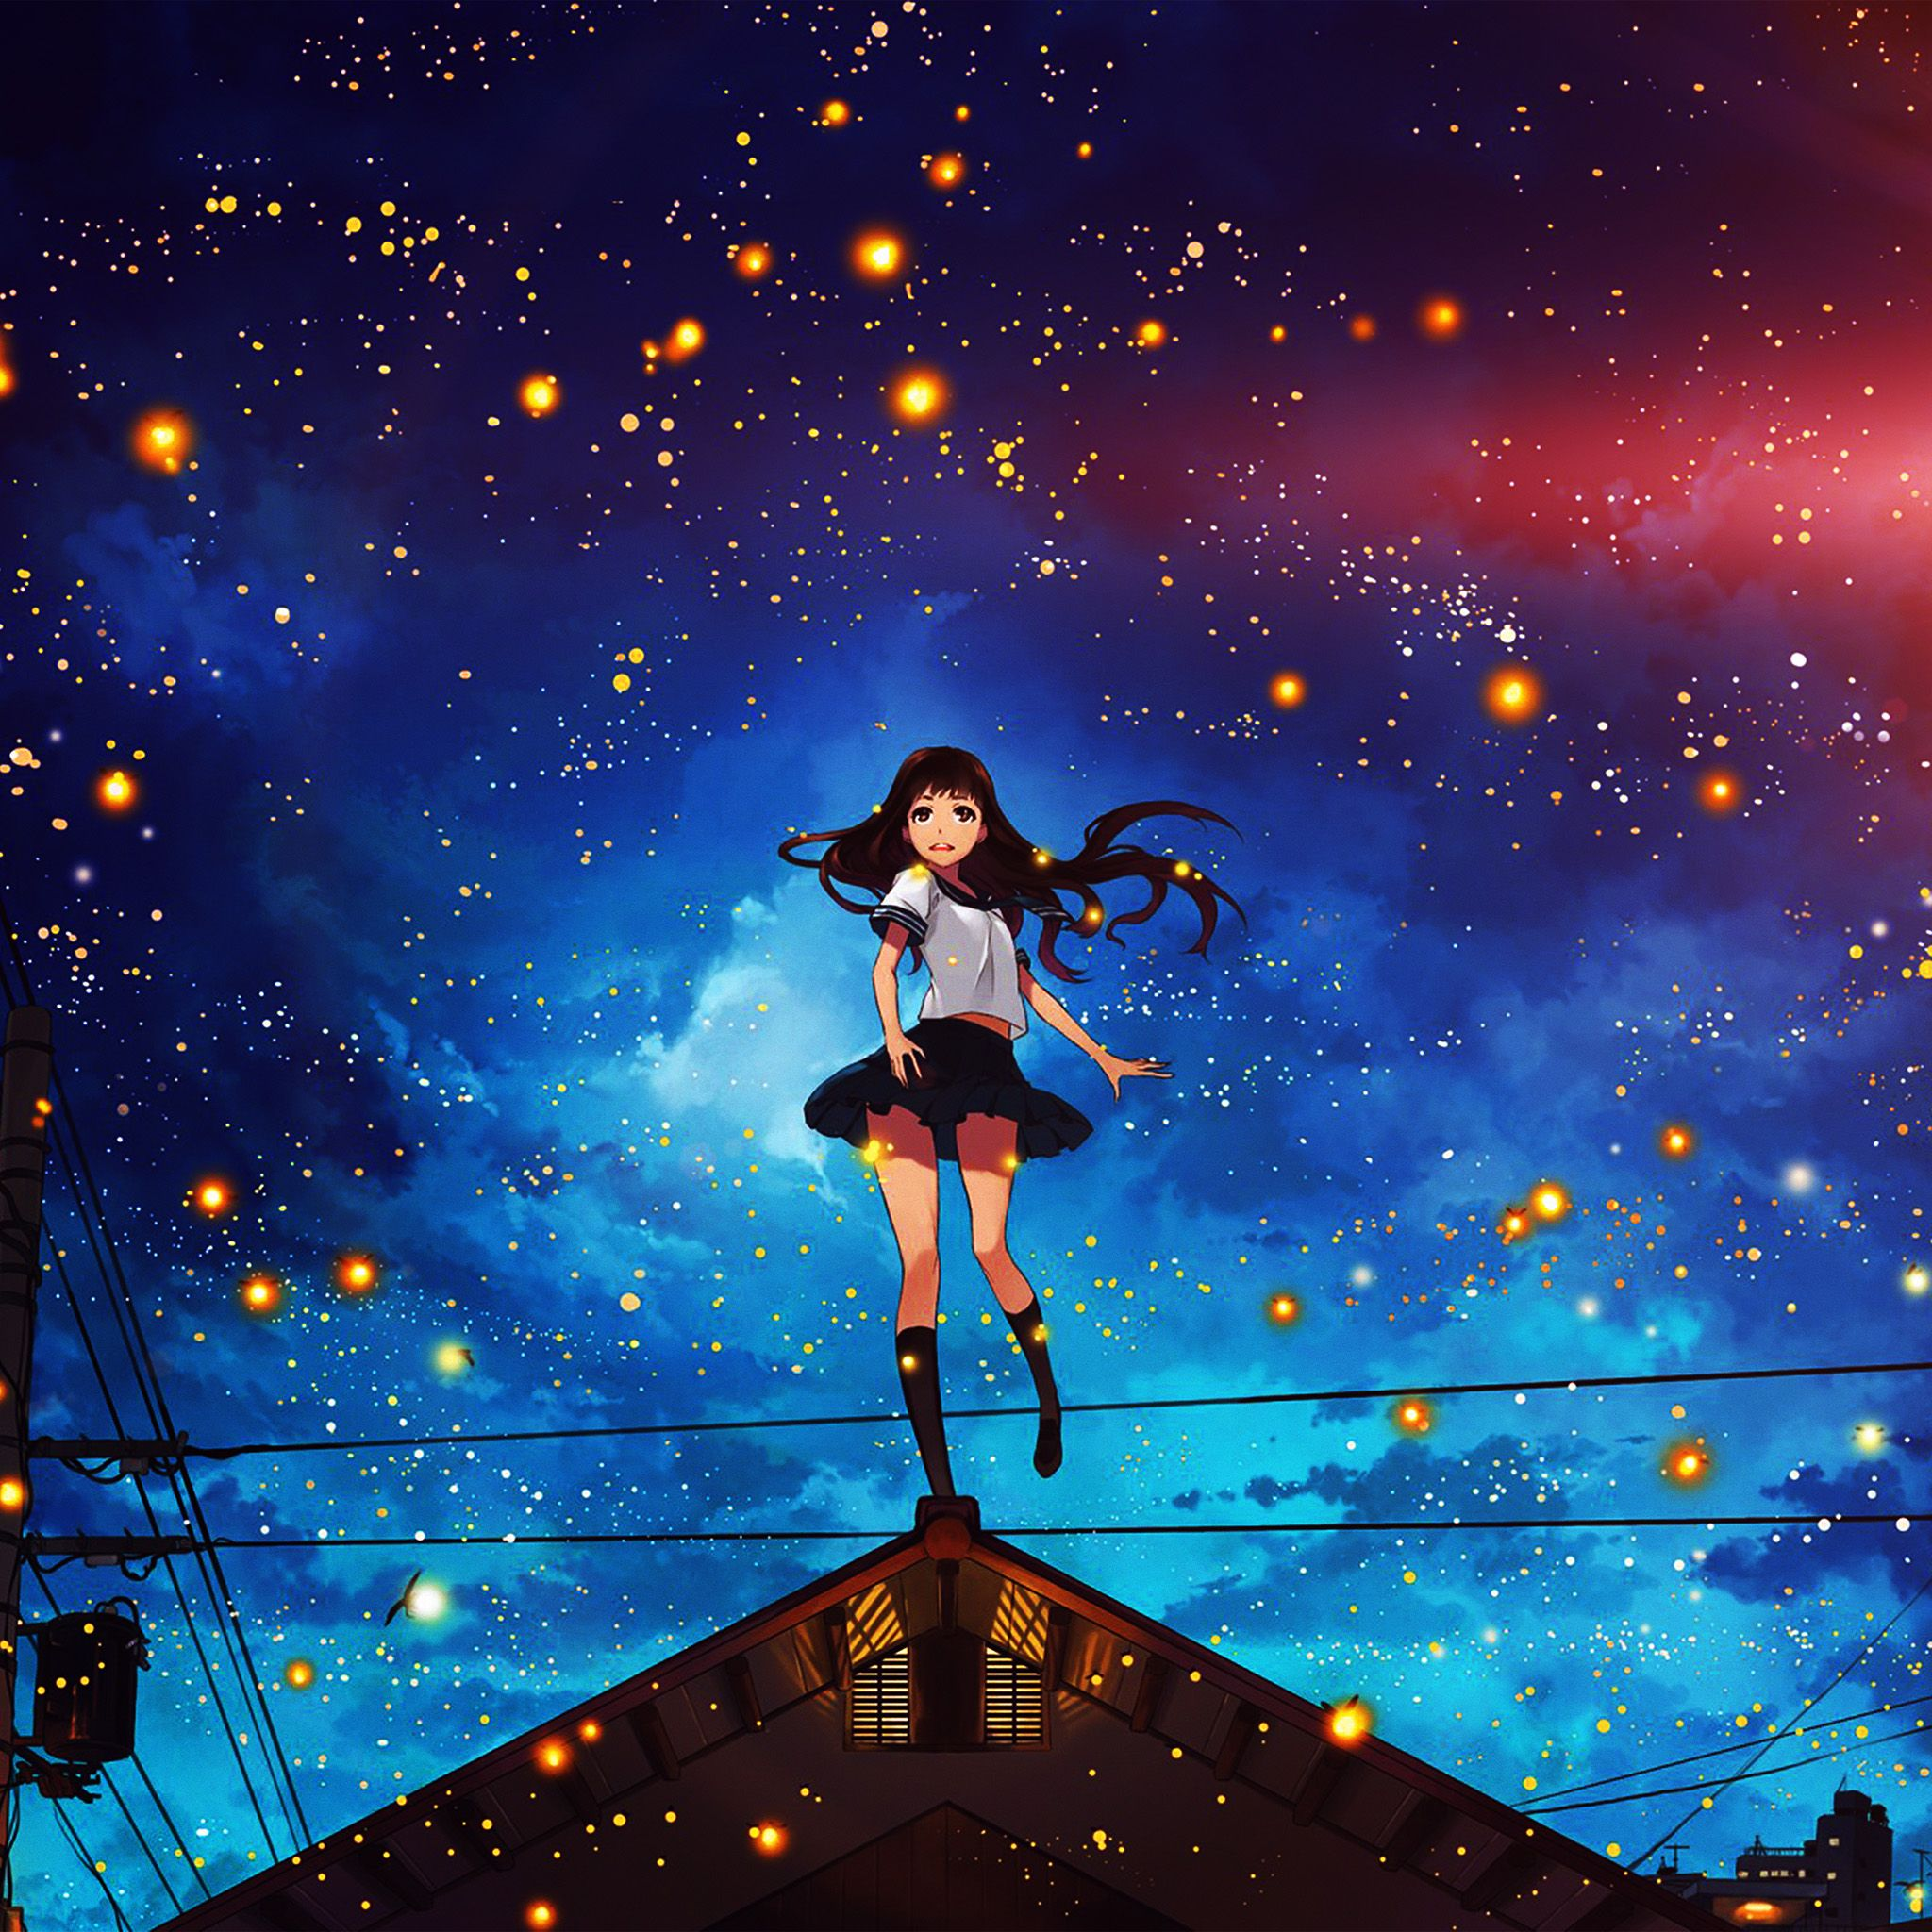 Anime Space Girl Wallpapers Top Free Anime Space Girl Backgrounds Wallpaperaccess